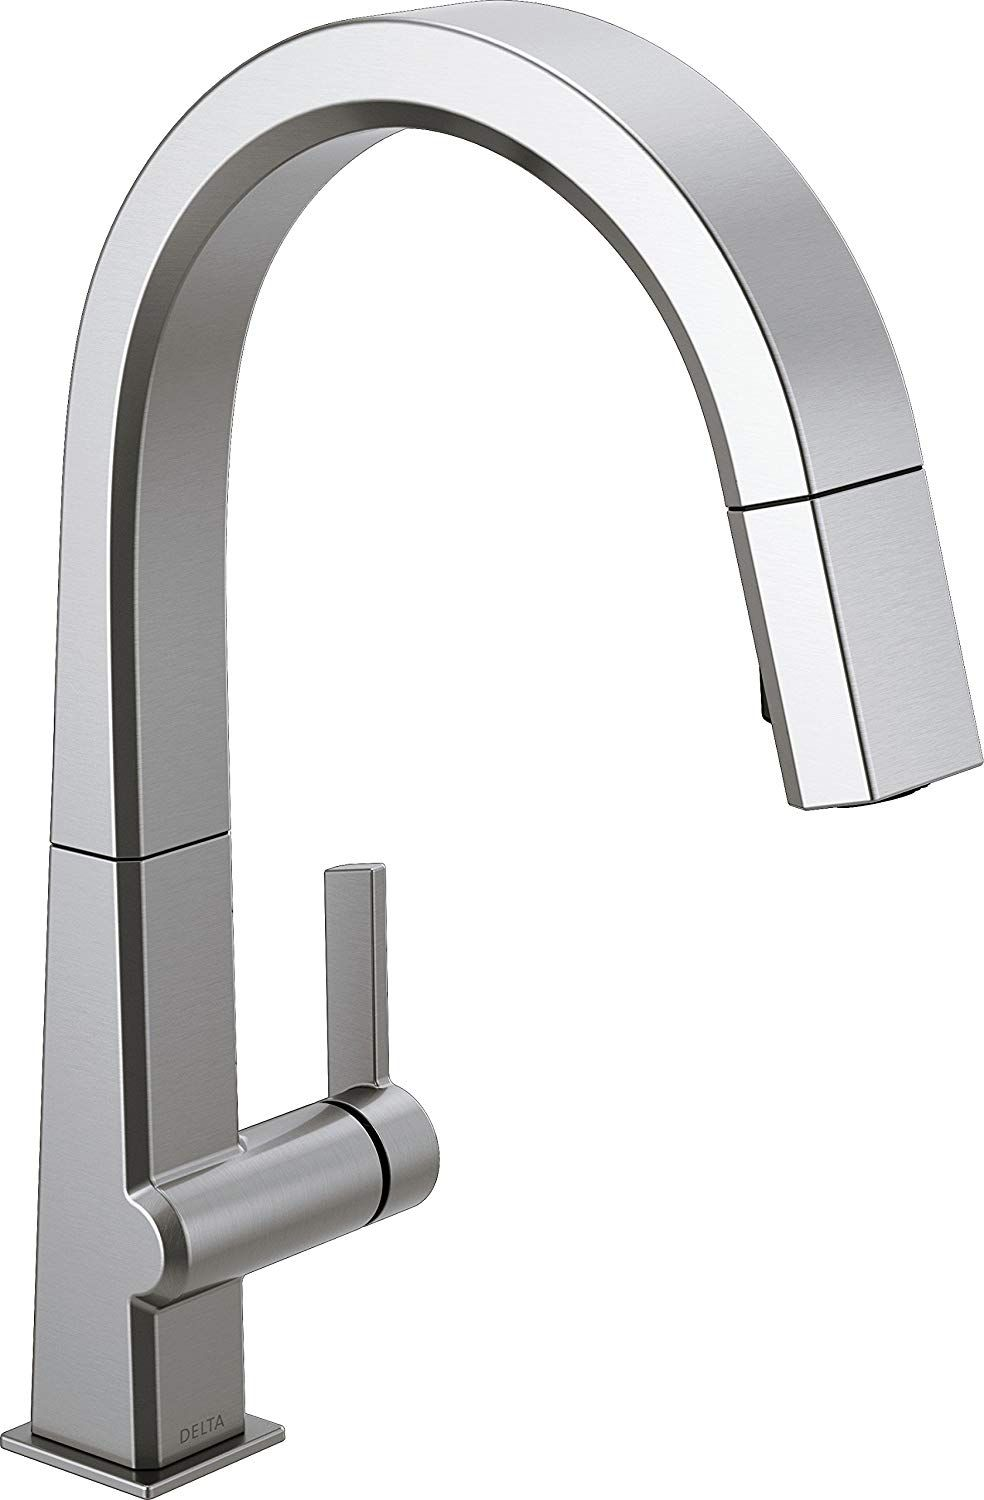 Delta Faucet Pivotal Single Handle Kitchen Sink Faucet With Pull Down Sprayer And Magnetic Docking Spray Head Arctic Stain Kitchen Faucet Delta Faucets Faucet